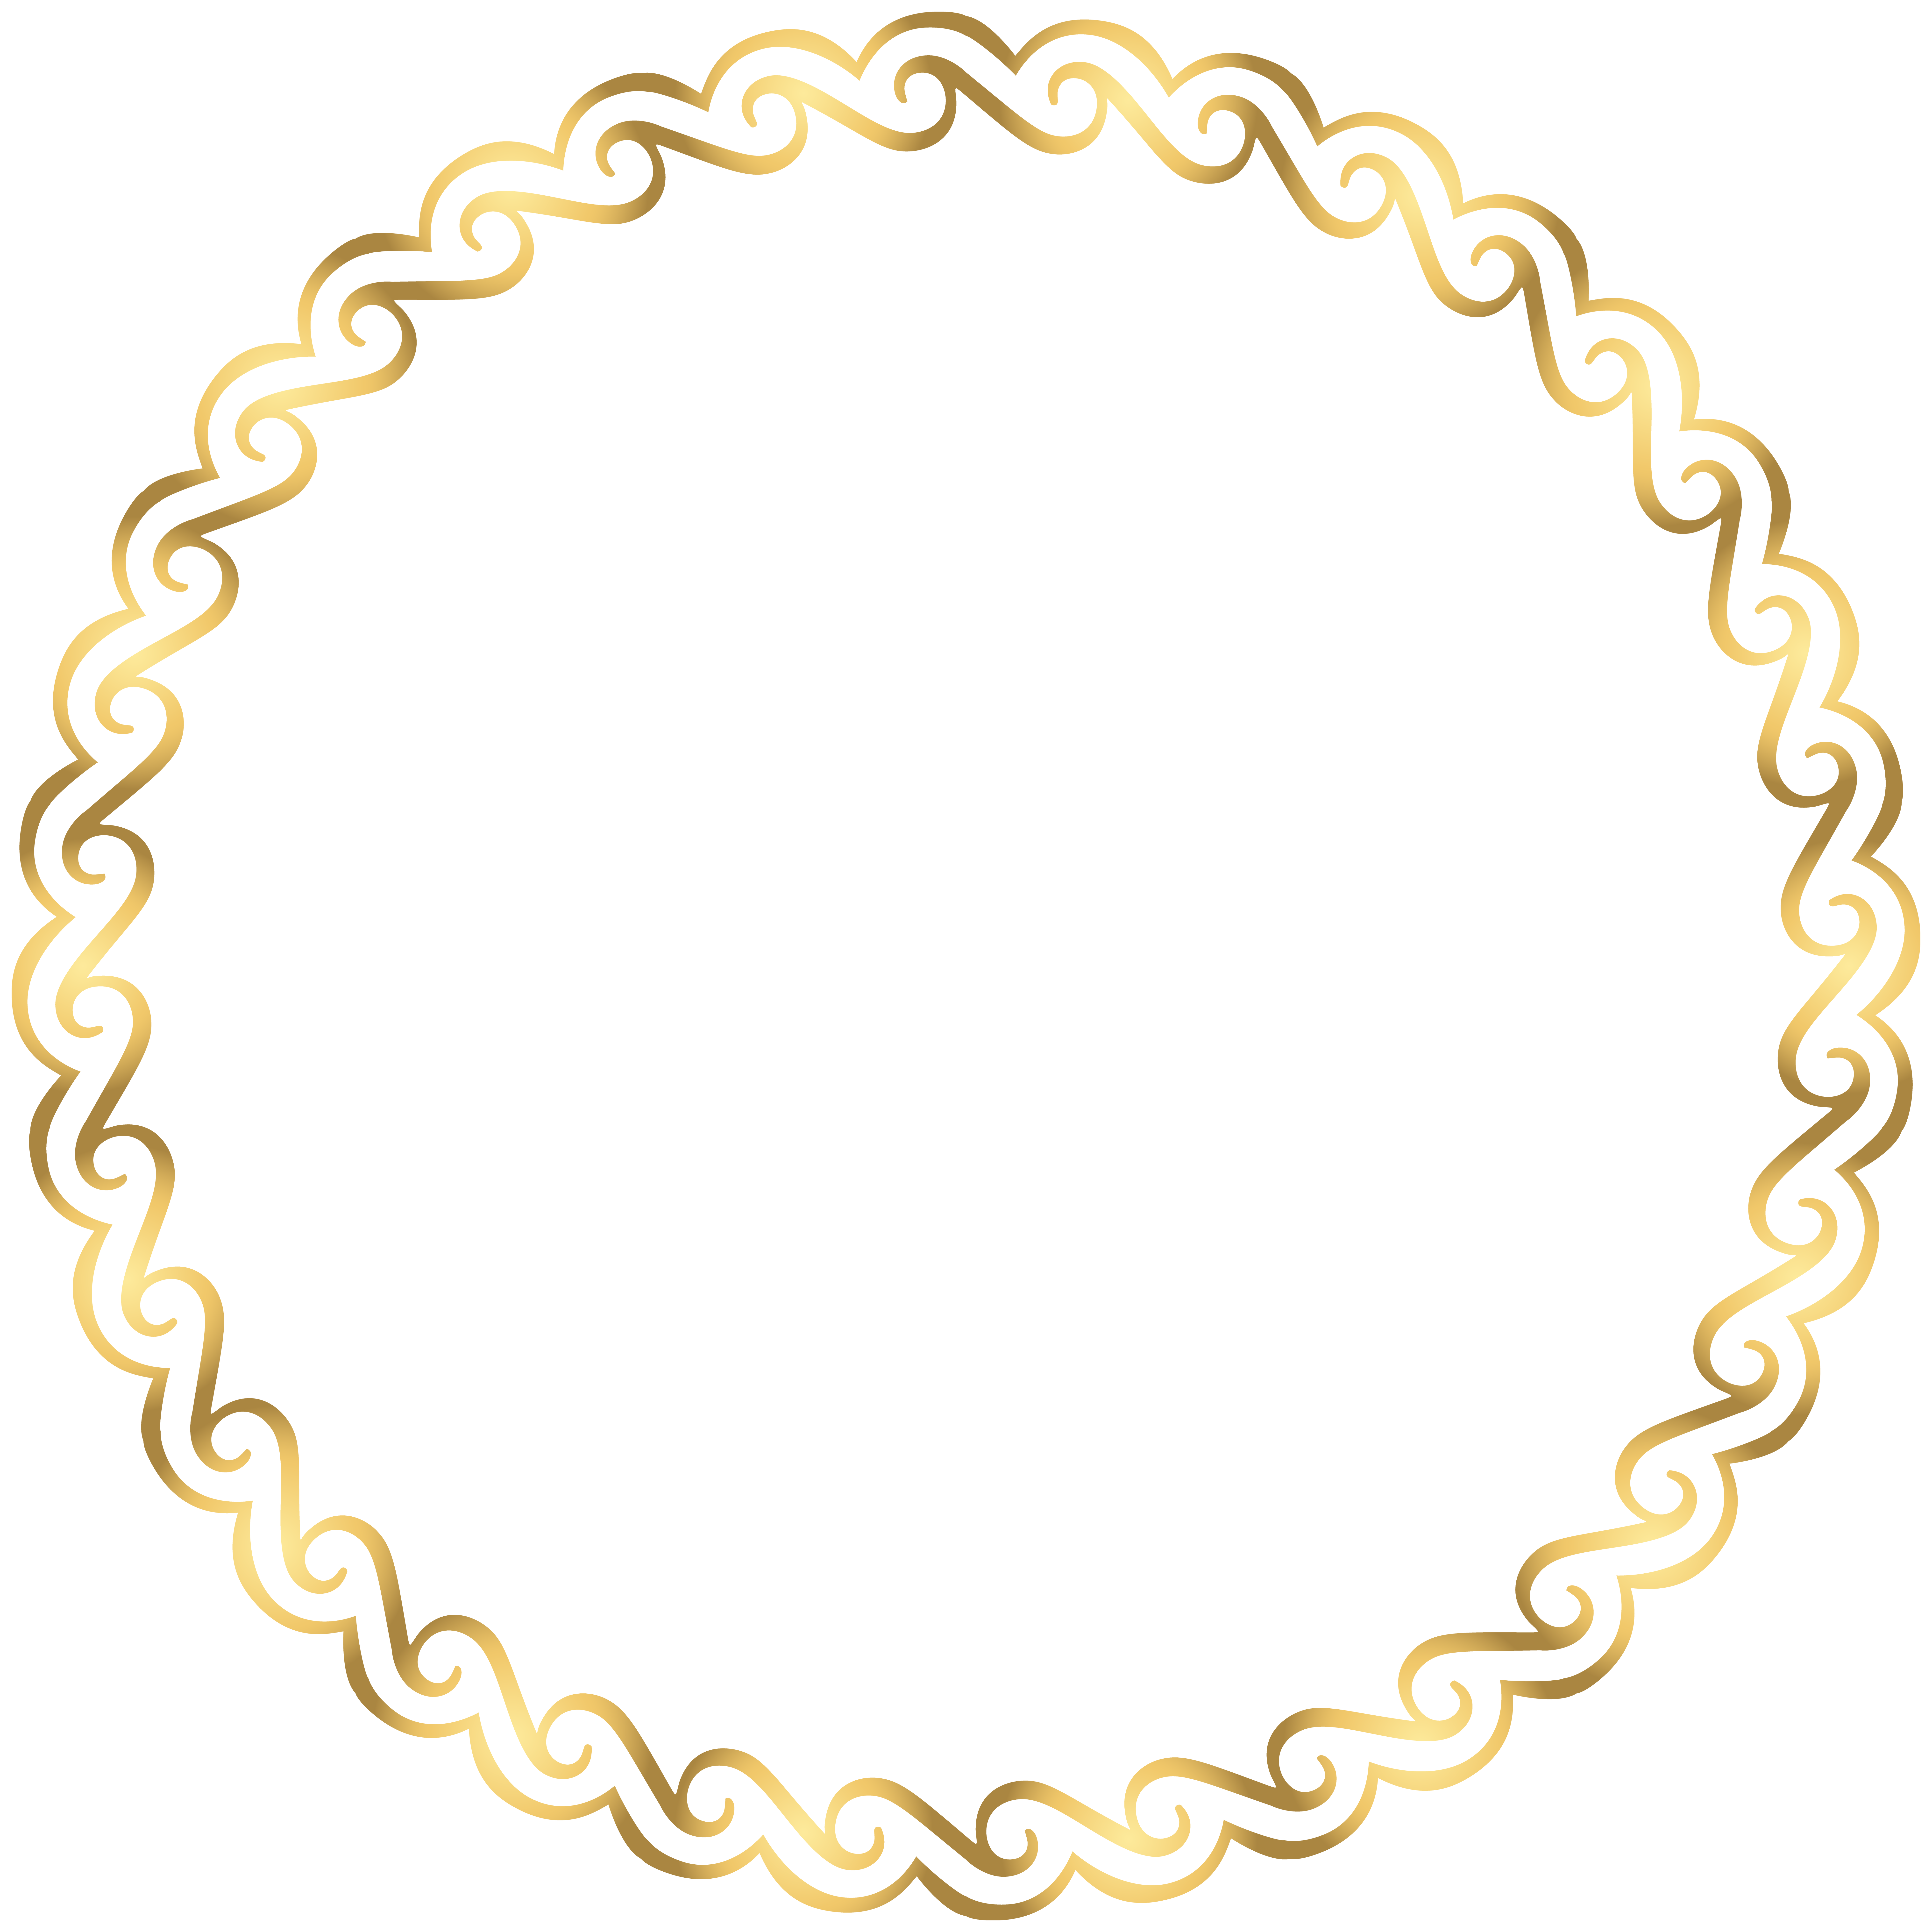 Round Border Deco Frame Png Clip Art Gallery Yopriceville High Quality Images And Transparent Png Free Cl Molduras Redondas Brasao Png Brasao Para Convite